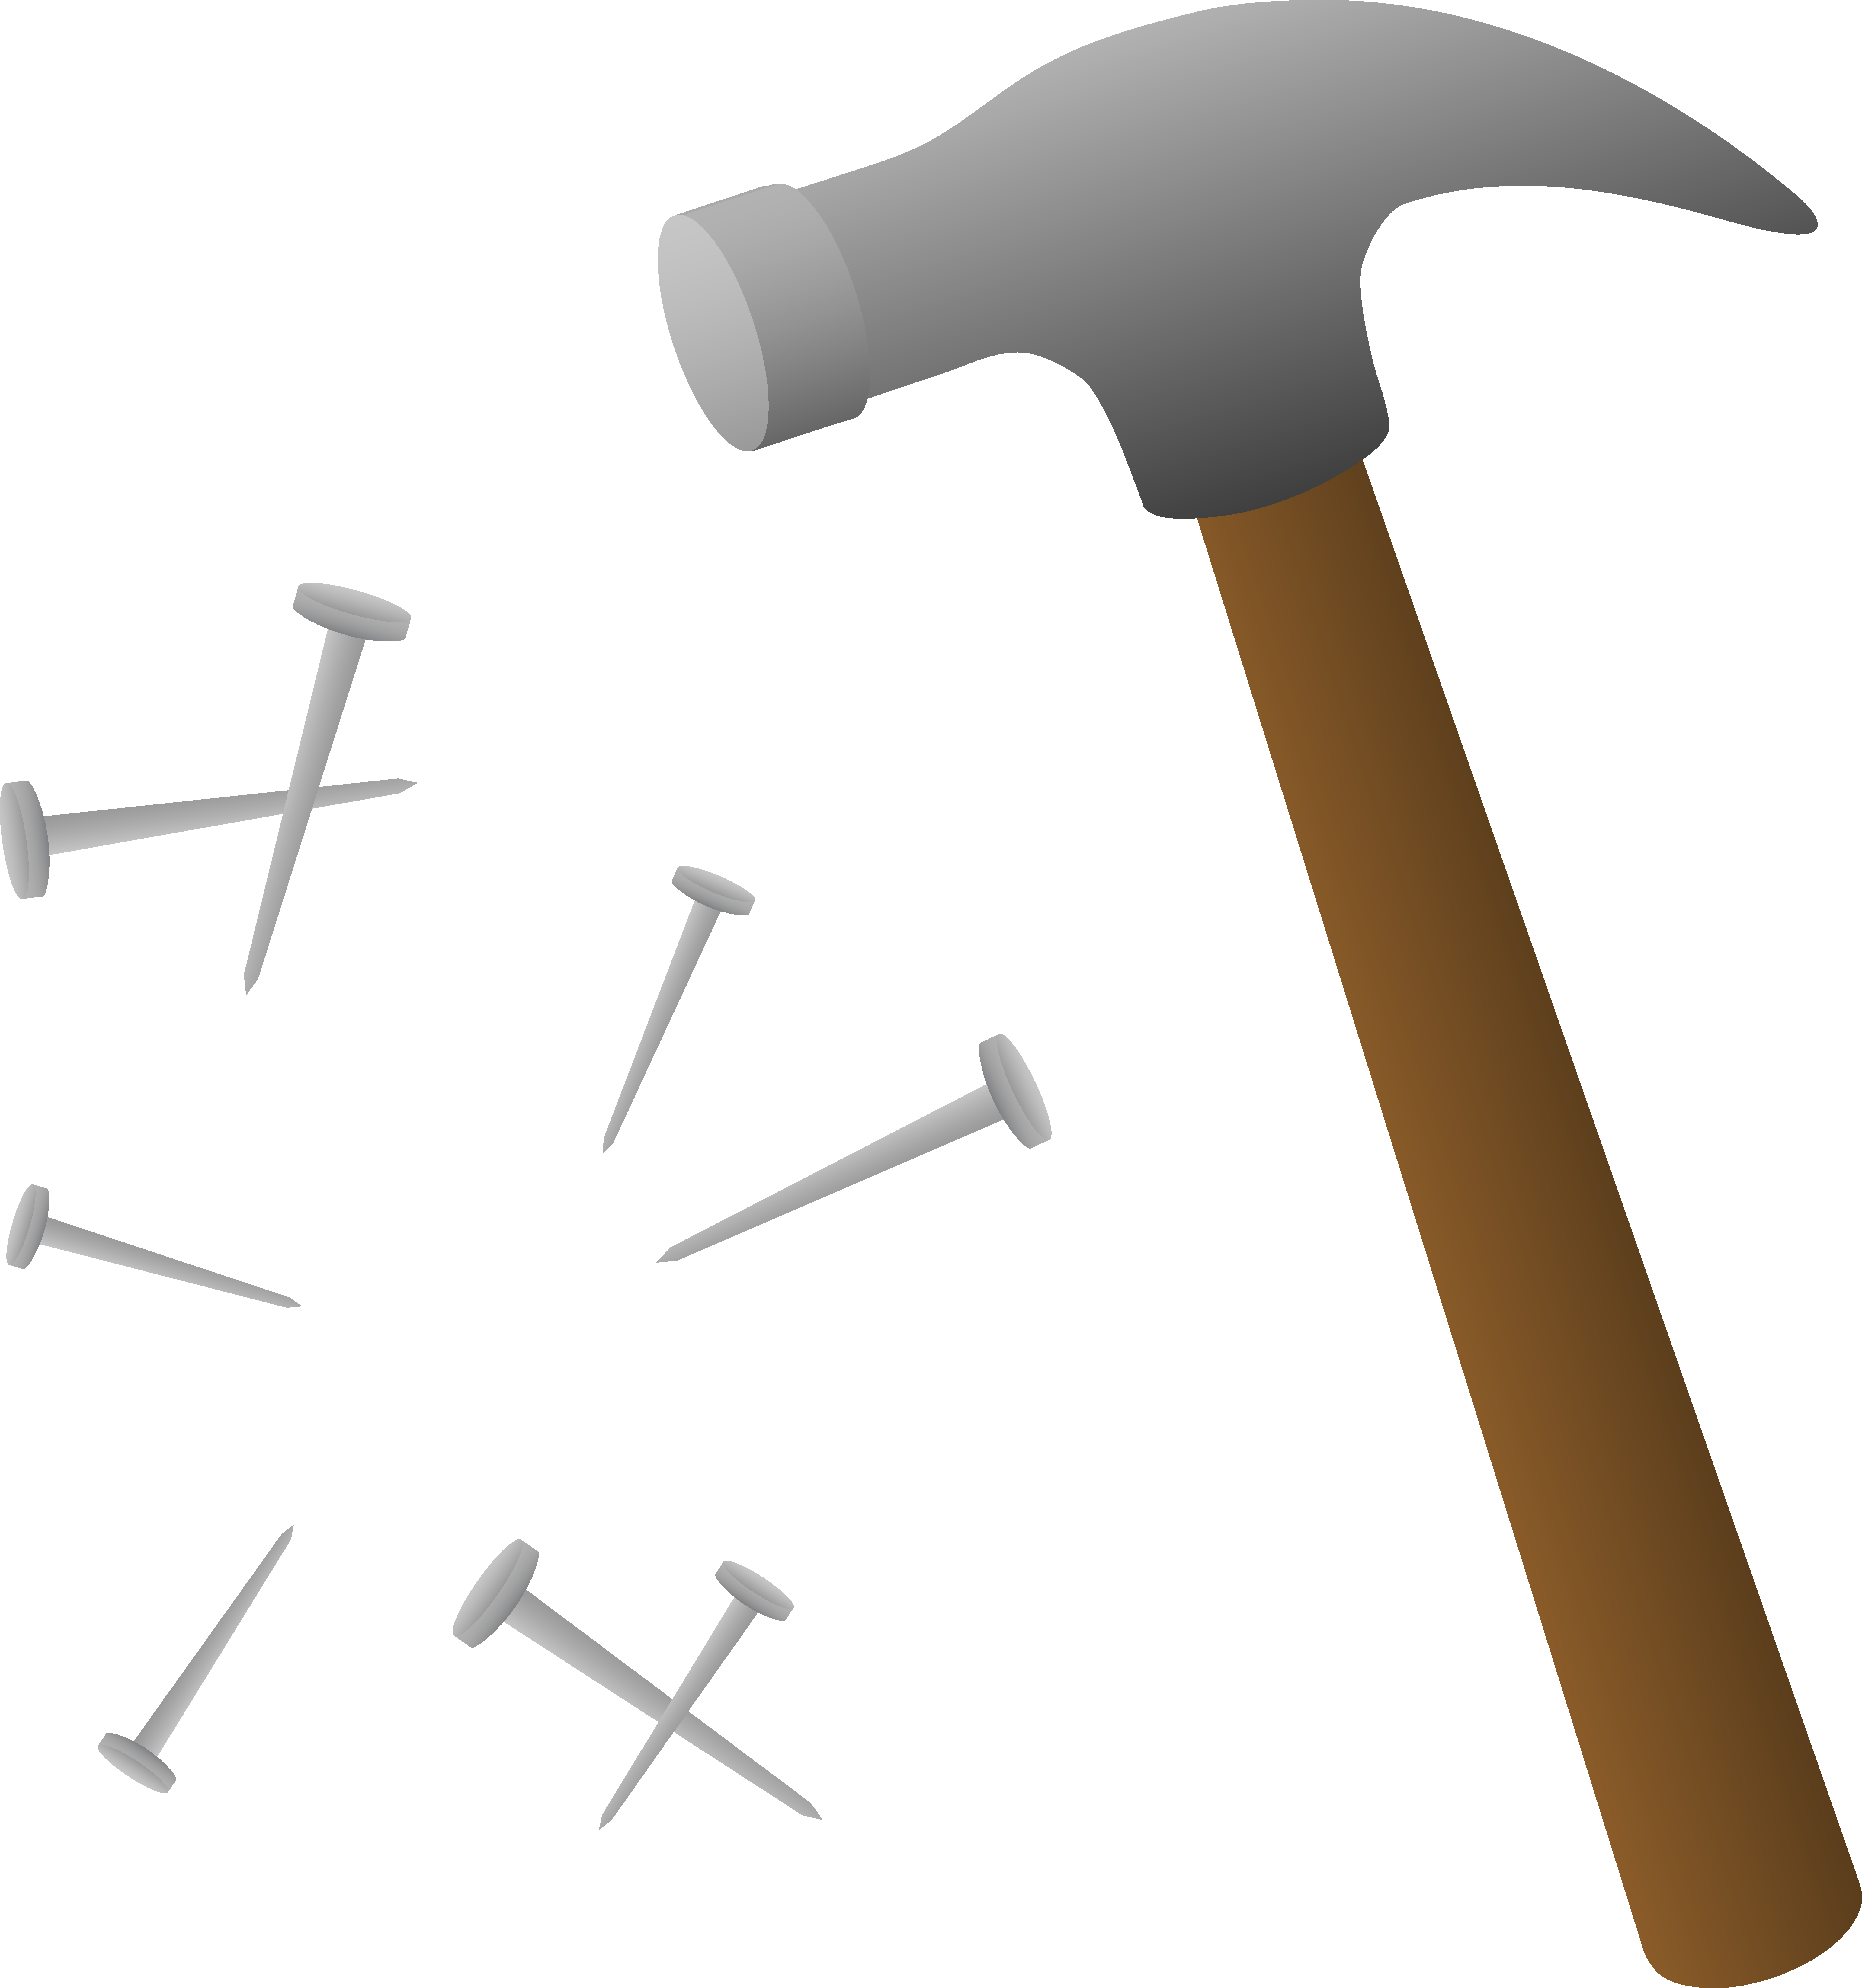 House hammer clipart png free download Clipart hammer woodworking FREE for download on rpelm png free download